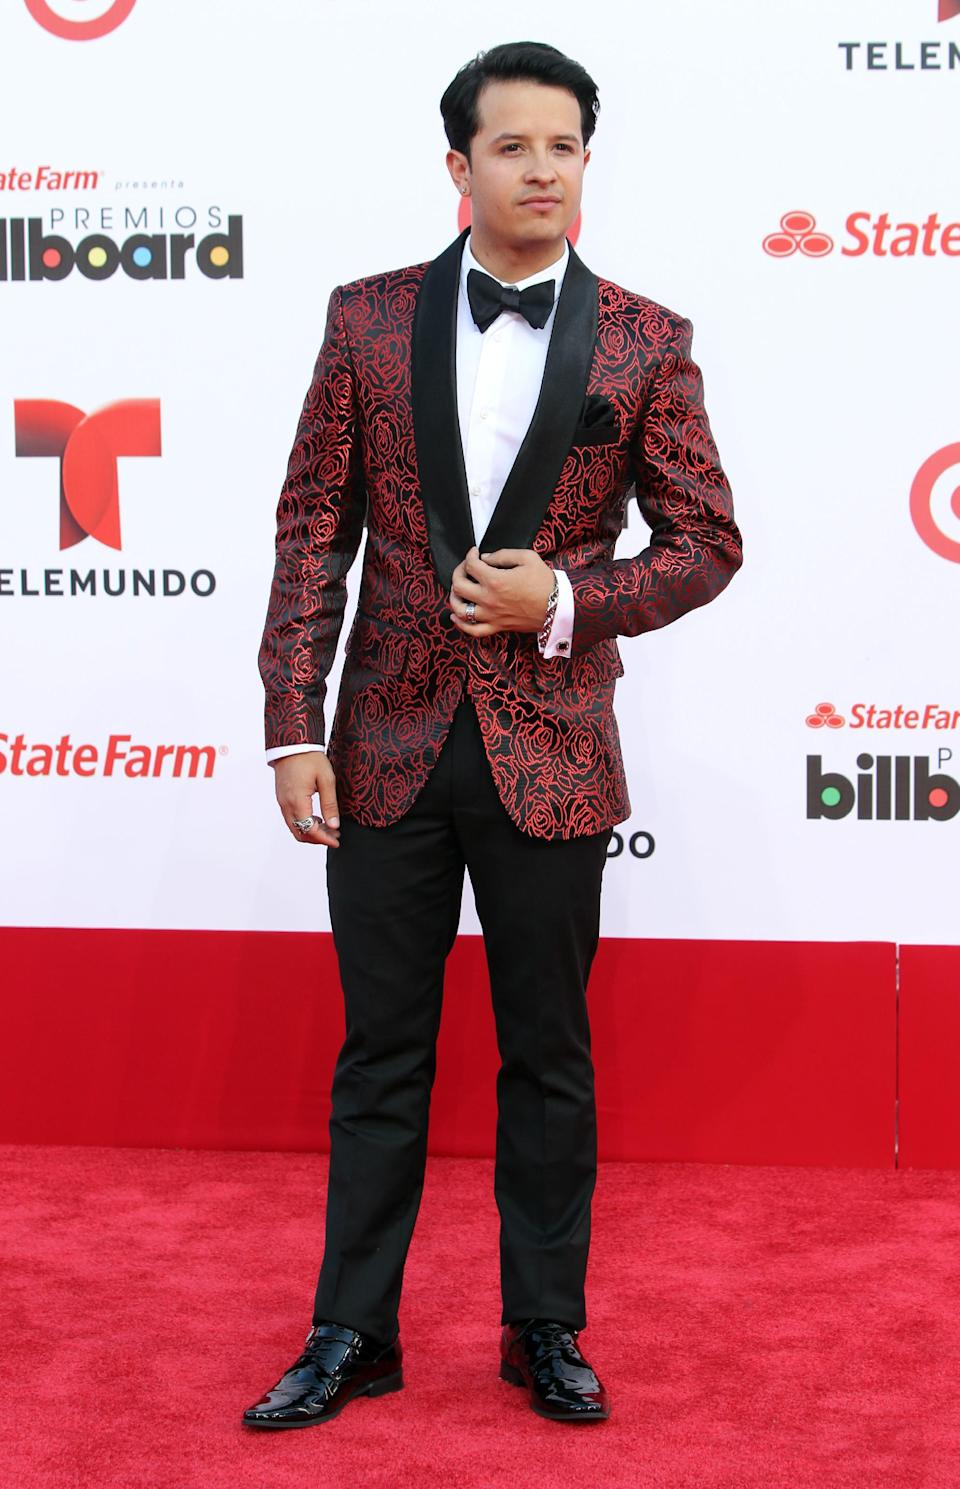 Panamanian reggaetton artist Fito Blanko arrives at the Latin Billboard Awards in Coral Gables, Fla. Thursday, April 25, 2013. (Photo by Carlo Allegri/Invision/AP)